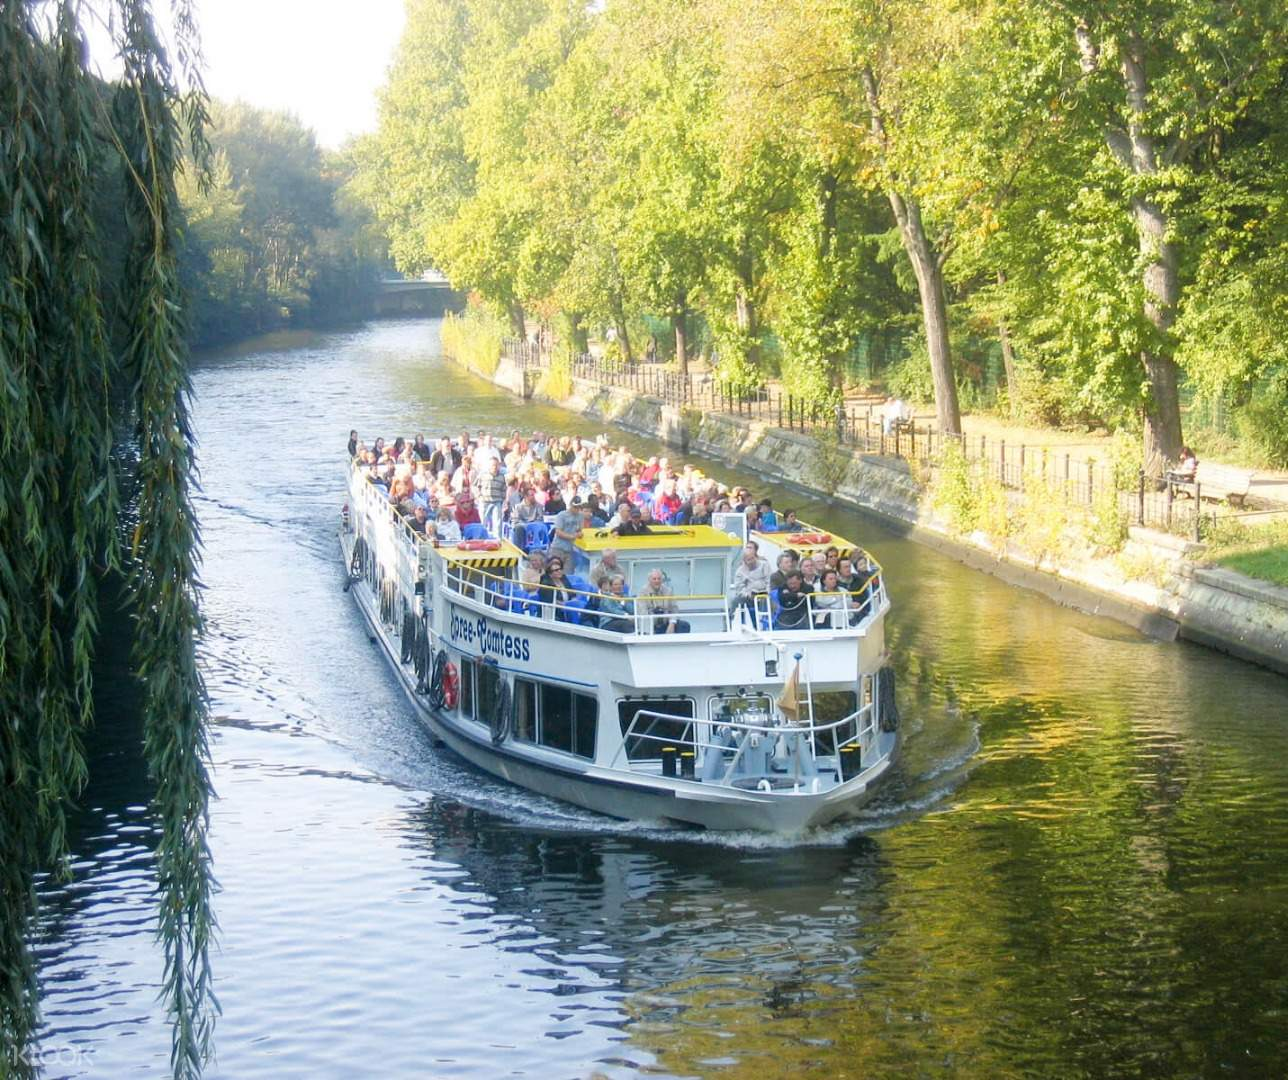 hop-on hop-off sightseeing boat on river spree in berlin